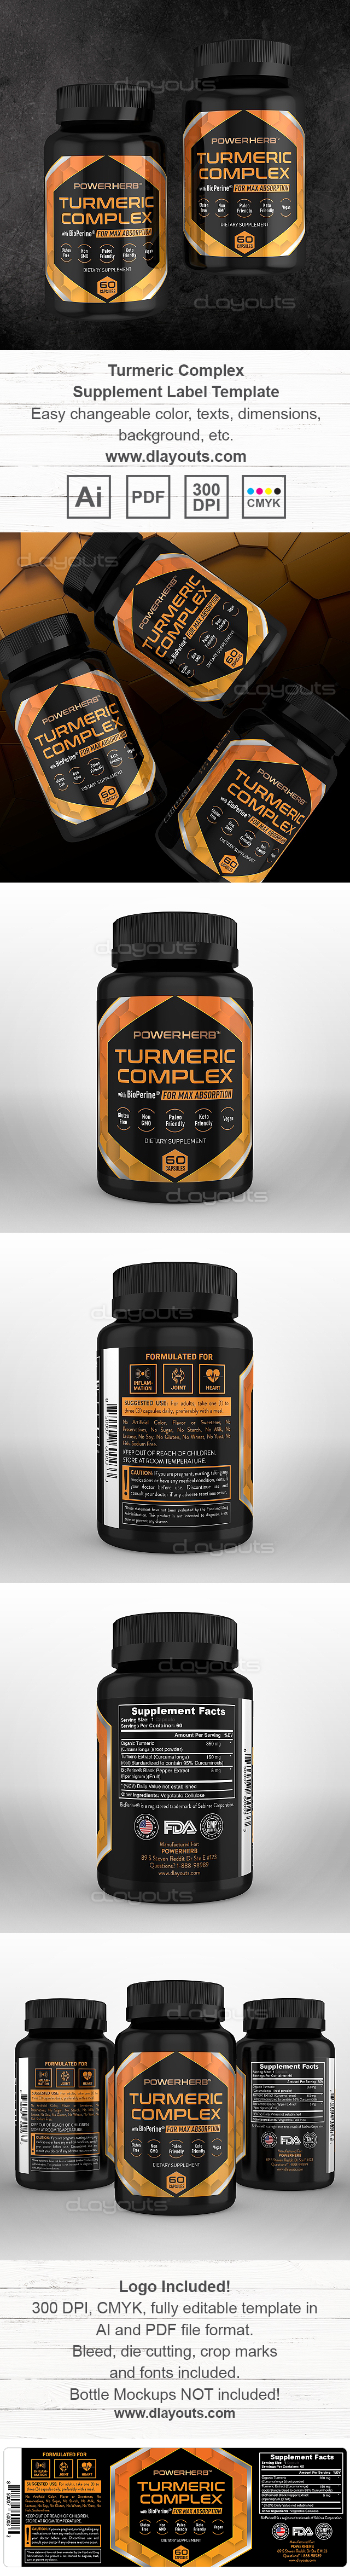 Turmeric Complex with BioPerine Supplement Label Template